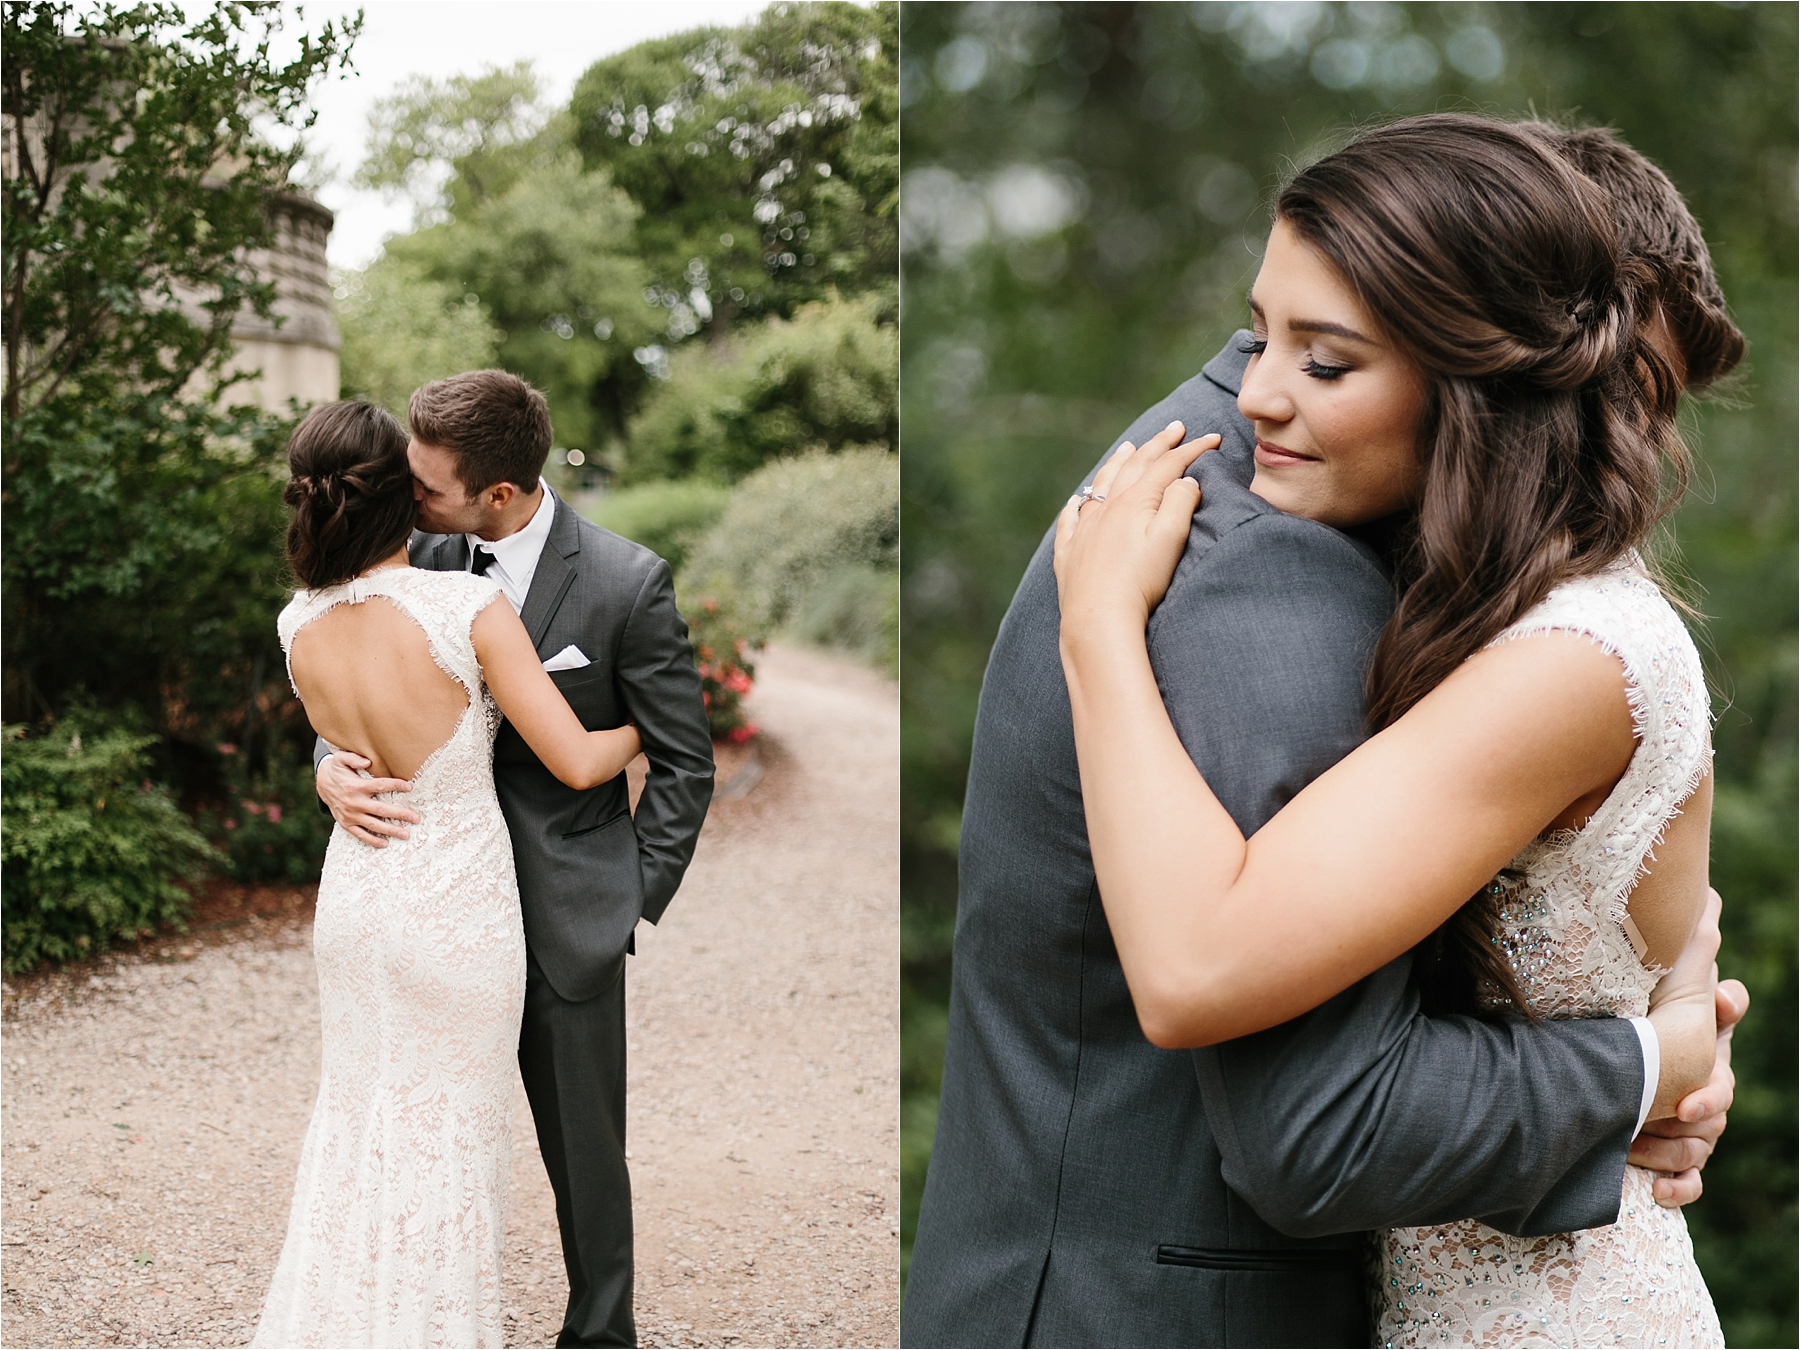 Devyn + Caden __ a Dallas Arboretum Garden Style Wedding by North Texas Wedding Photographer Rachel Meagan Photography __ 023